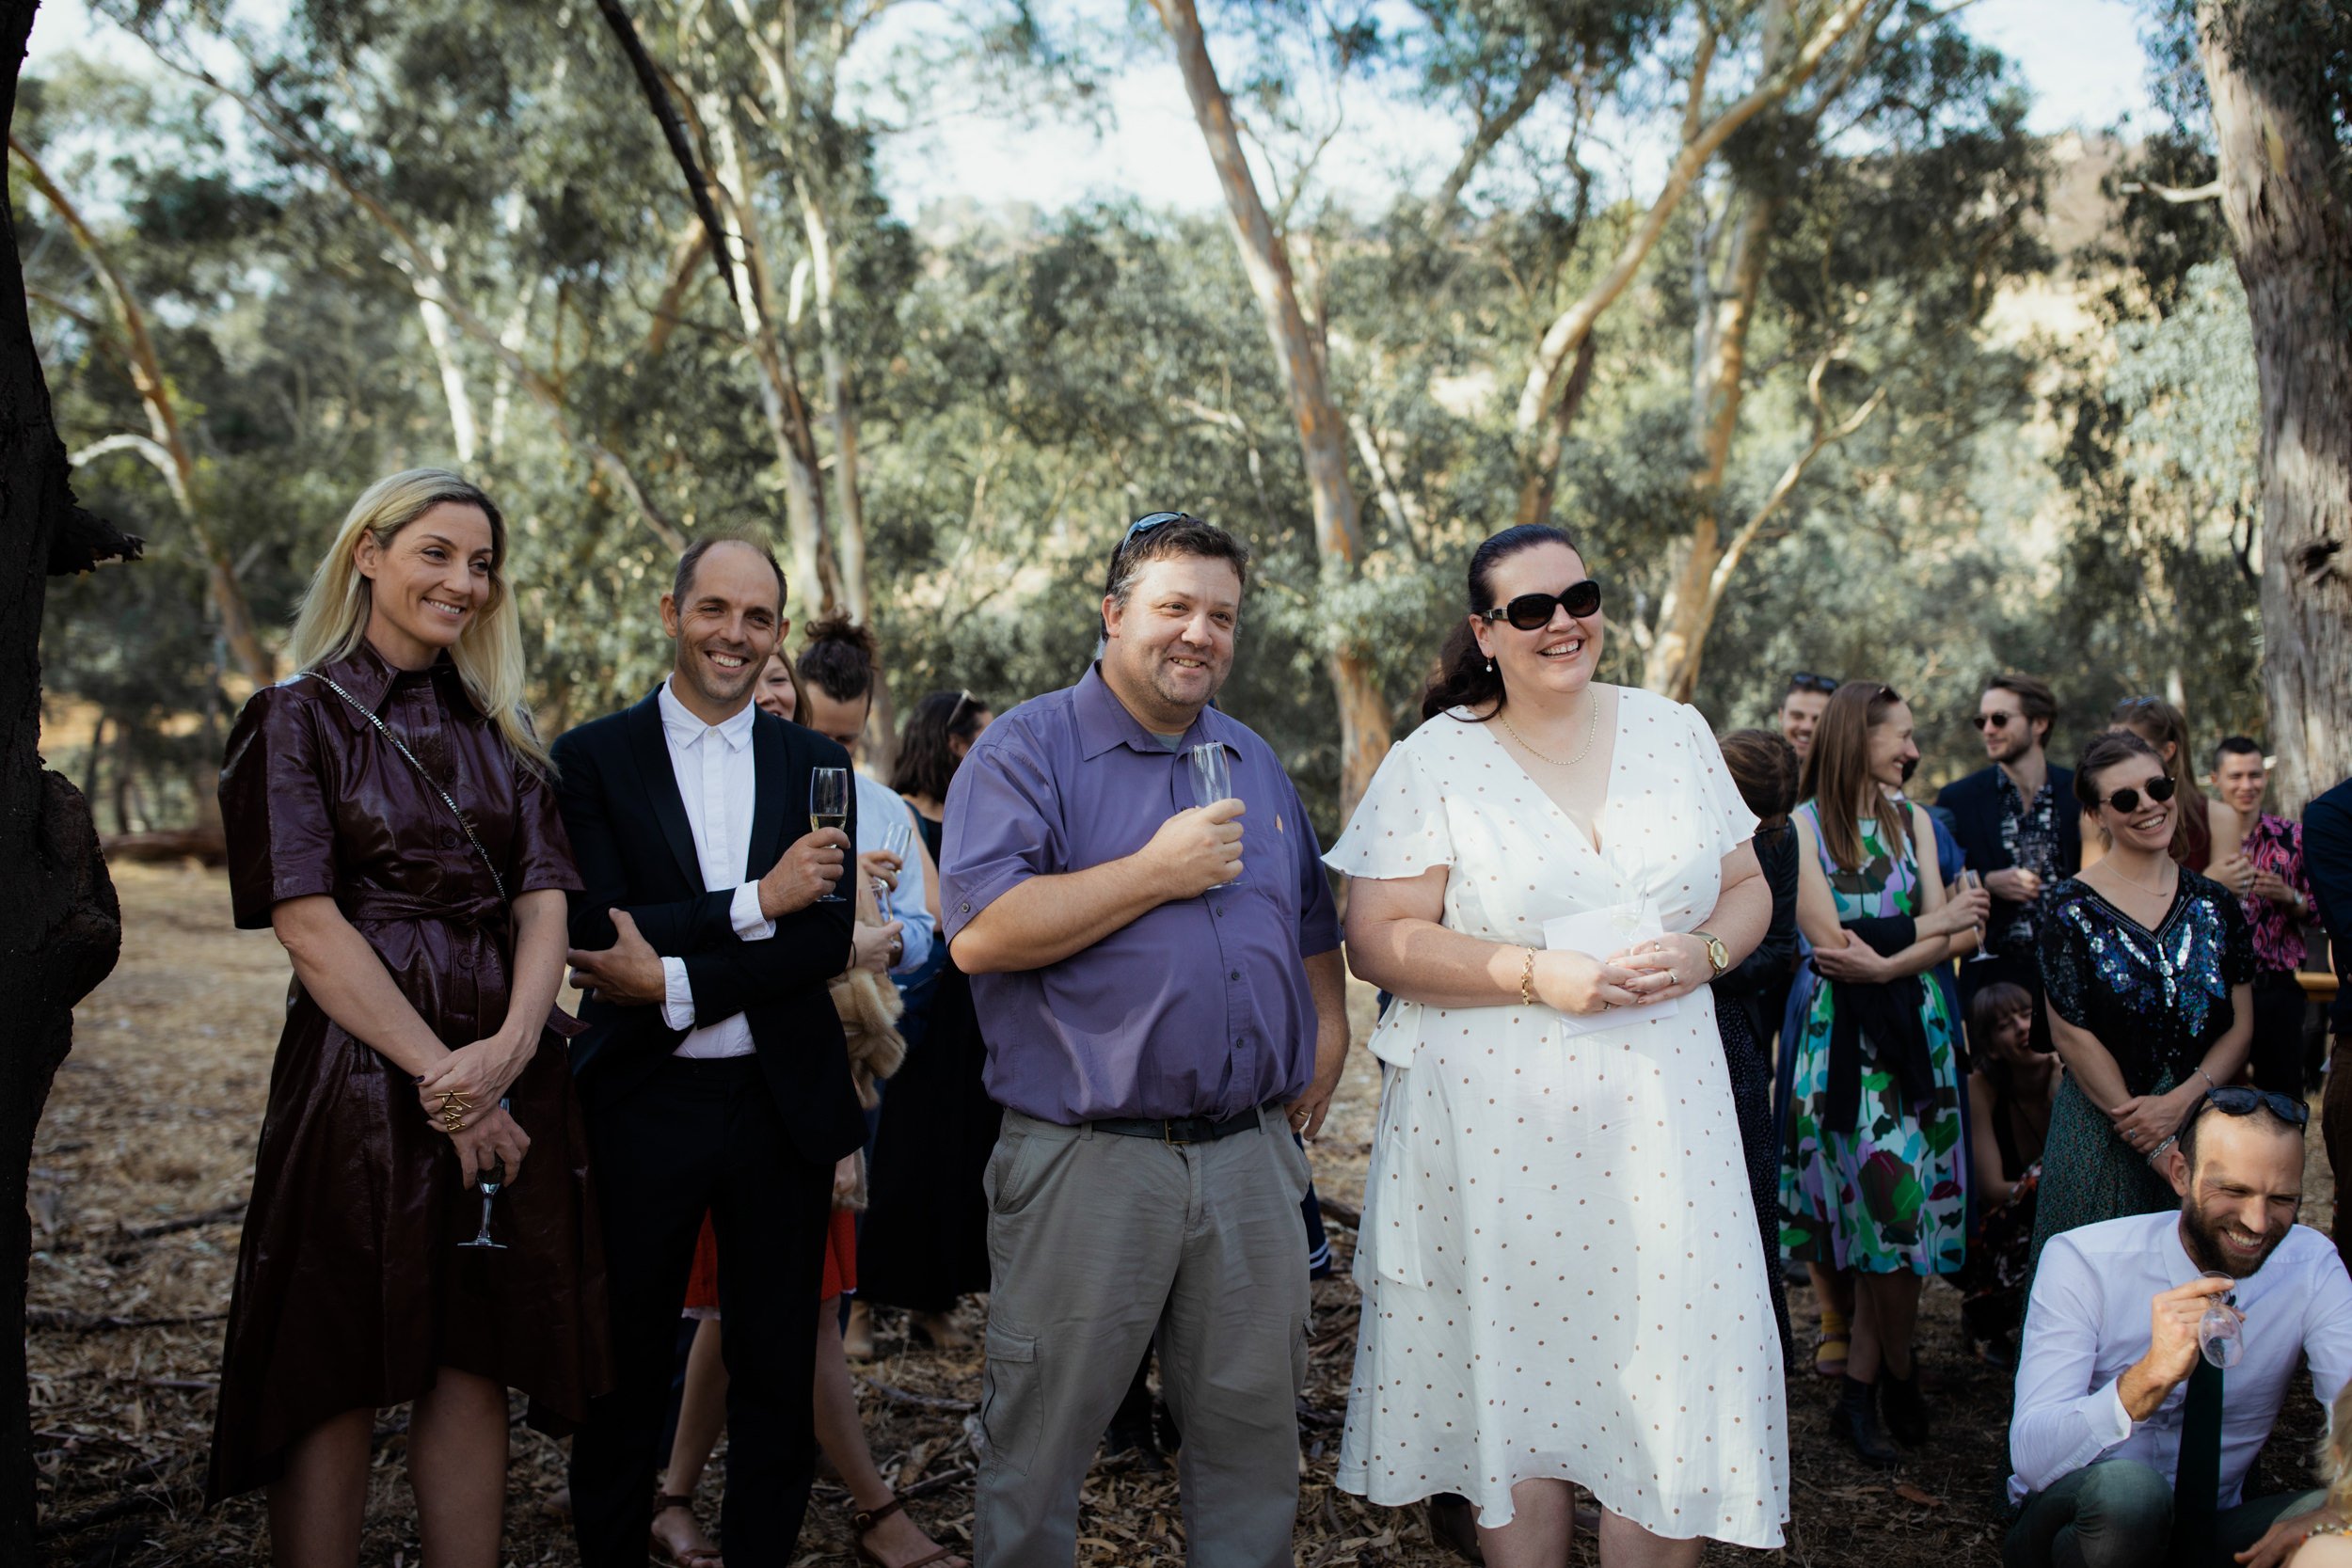 I-Got-You-Babe-Weddings-Claire-Dave-Trawol-VIC-Country-Property-Wedding113.JPG